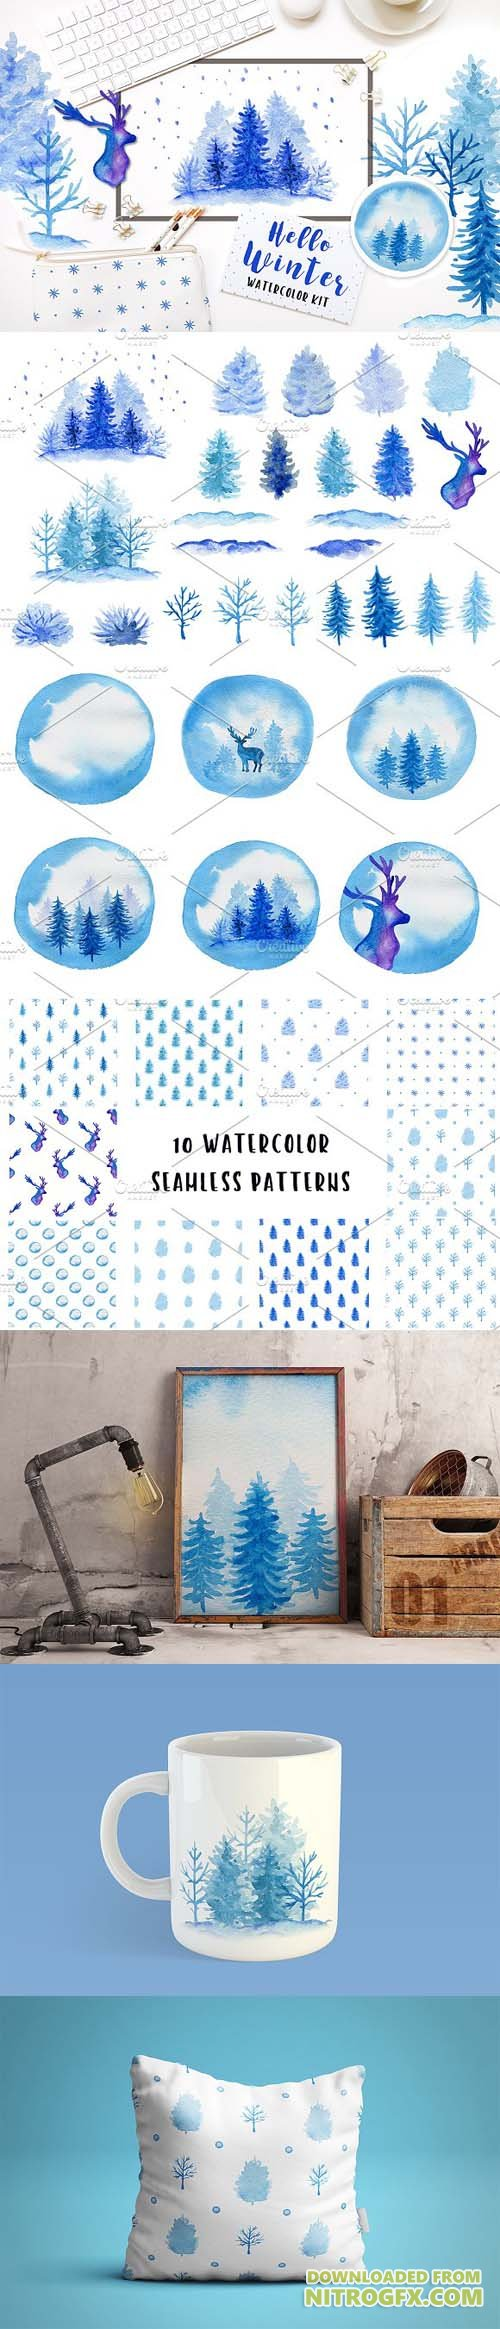 Winter watercolor design kit 2103090